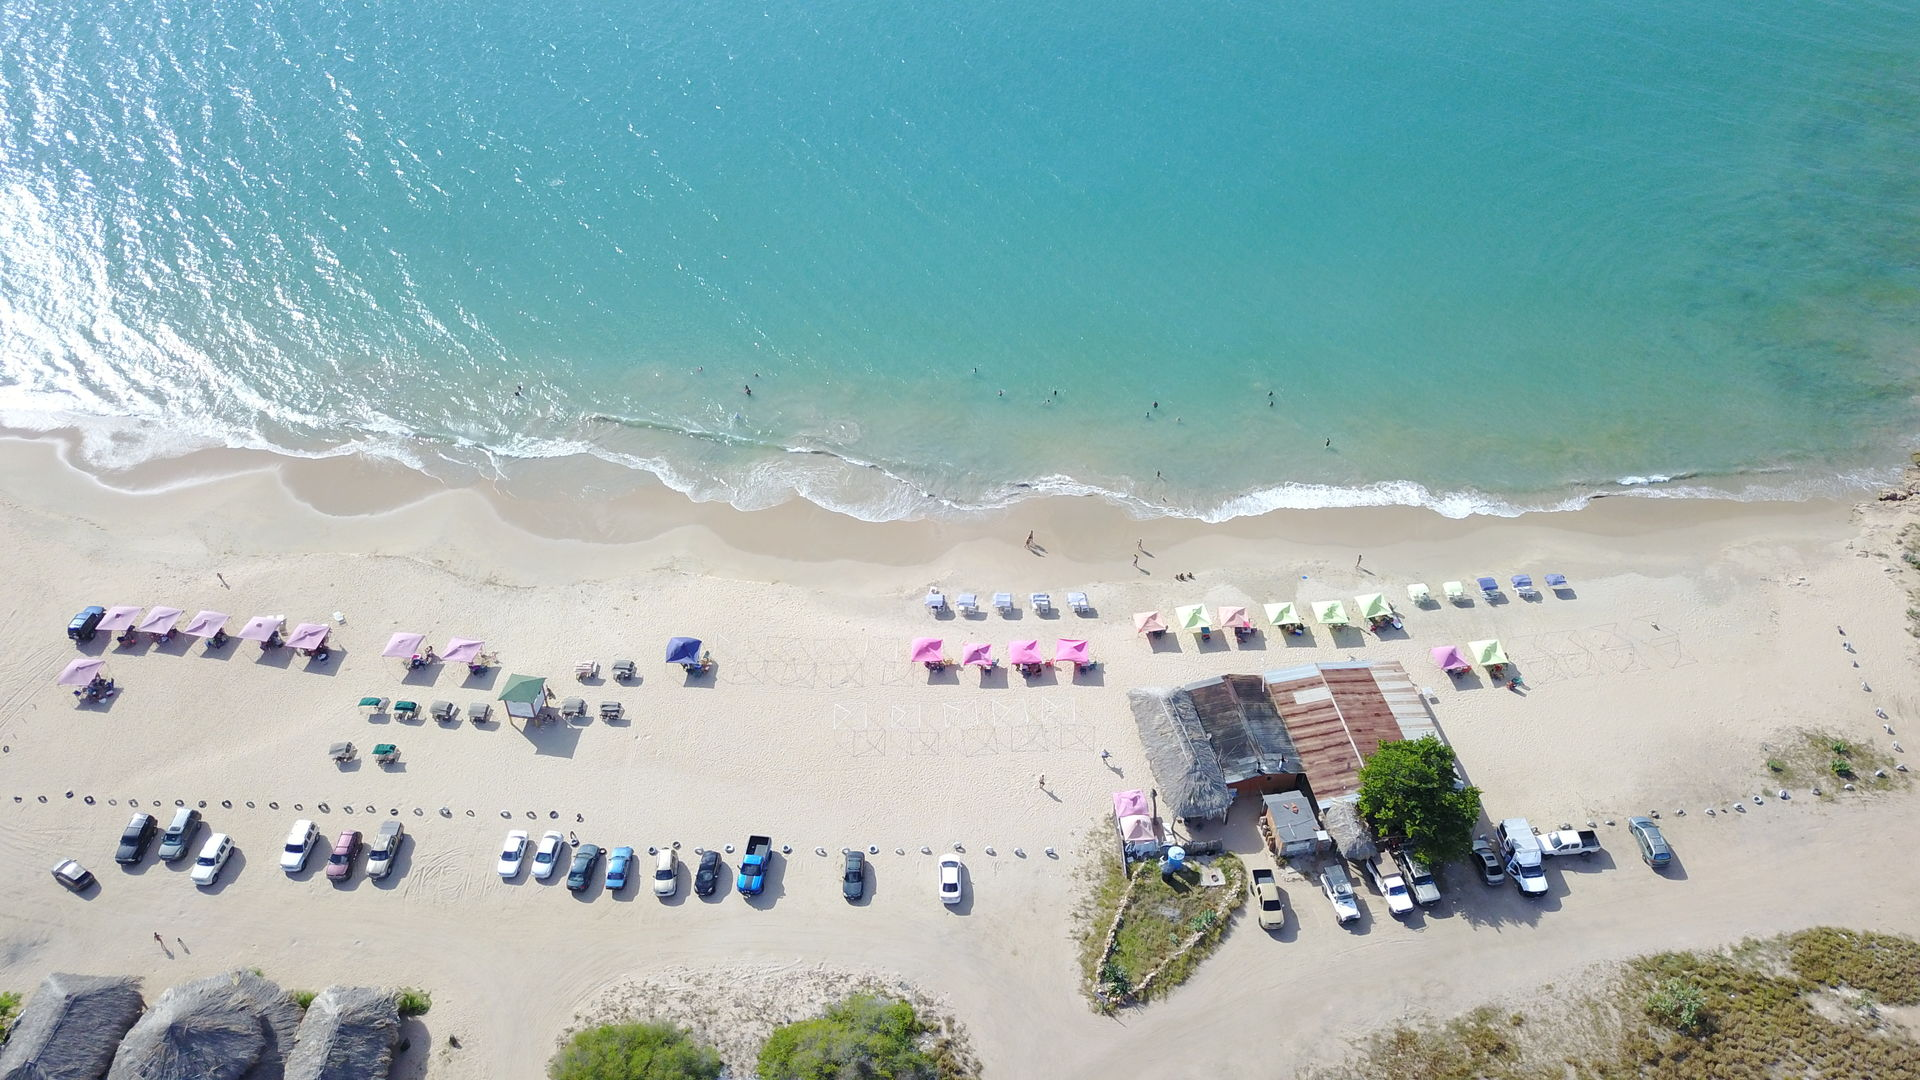 Hotels in Margarita Island - All Inclusive Vacation Plan Margarita Island from Colombia